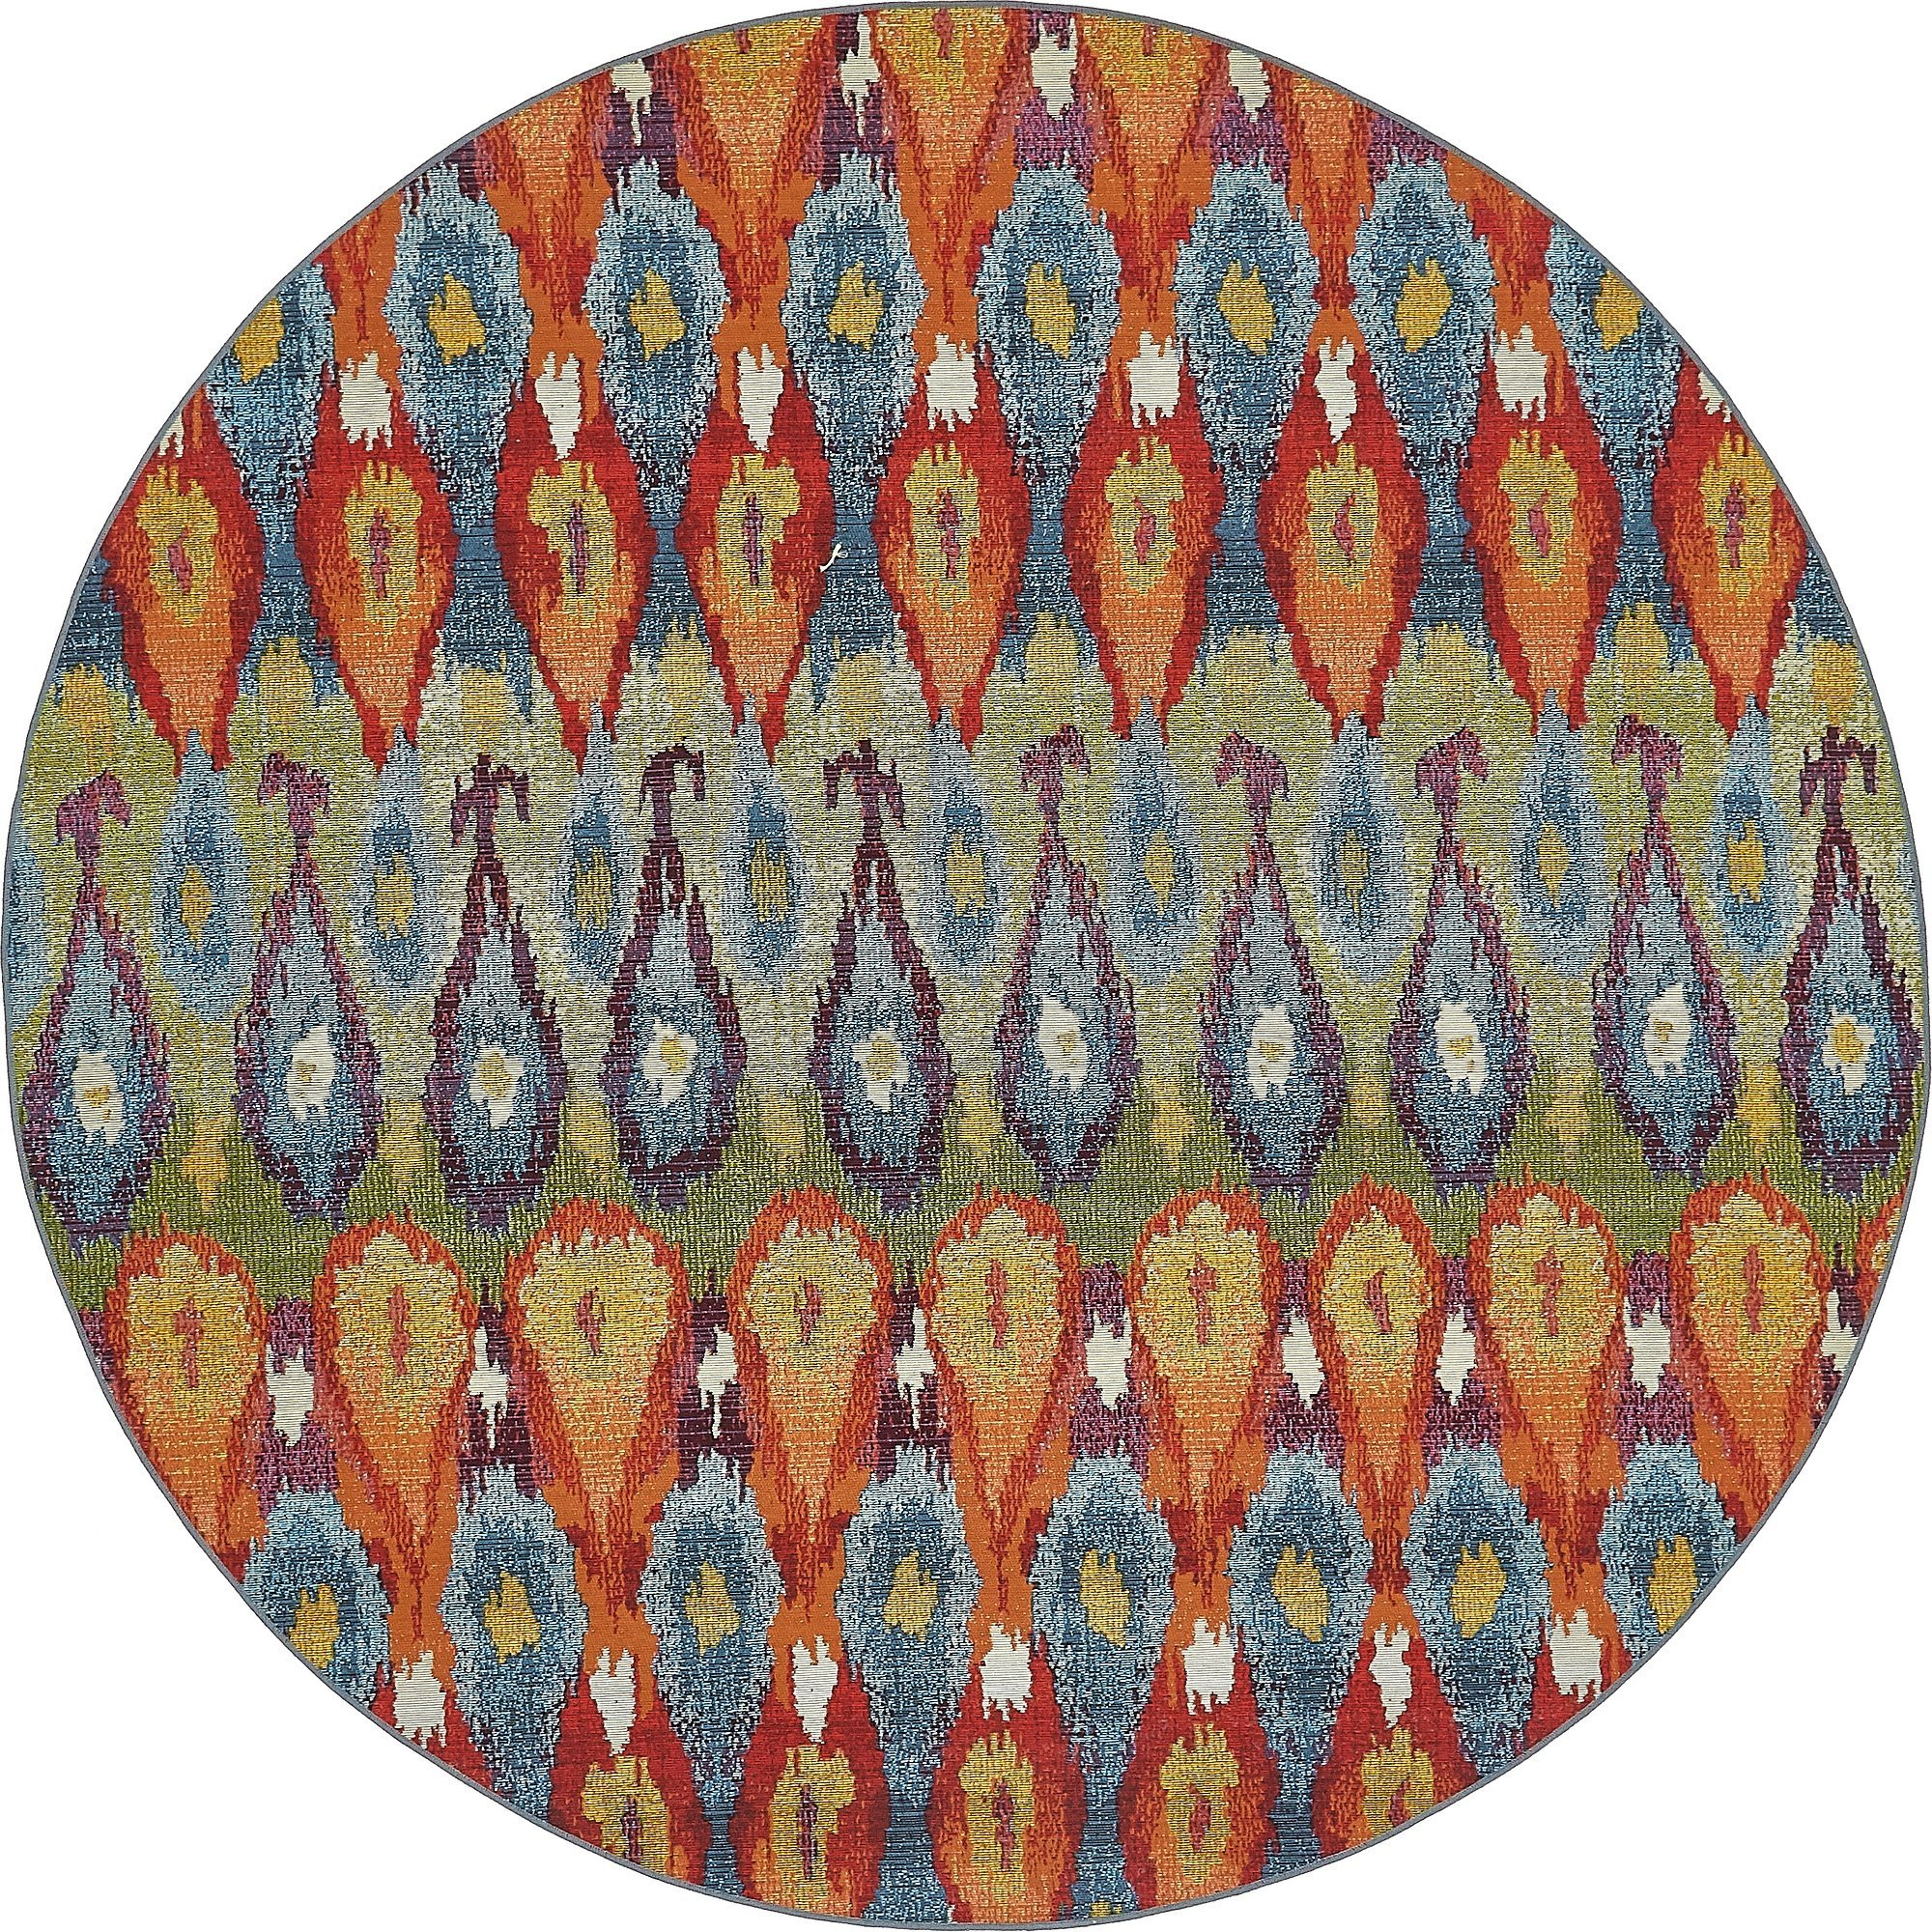 Unique Loom Eden Outdoor Collection Multi 8 ft Round Area Rug (8' x 8') by Unique Loom